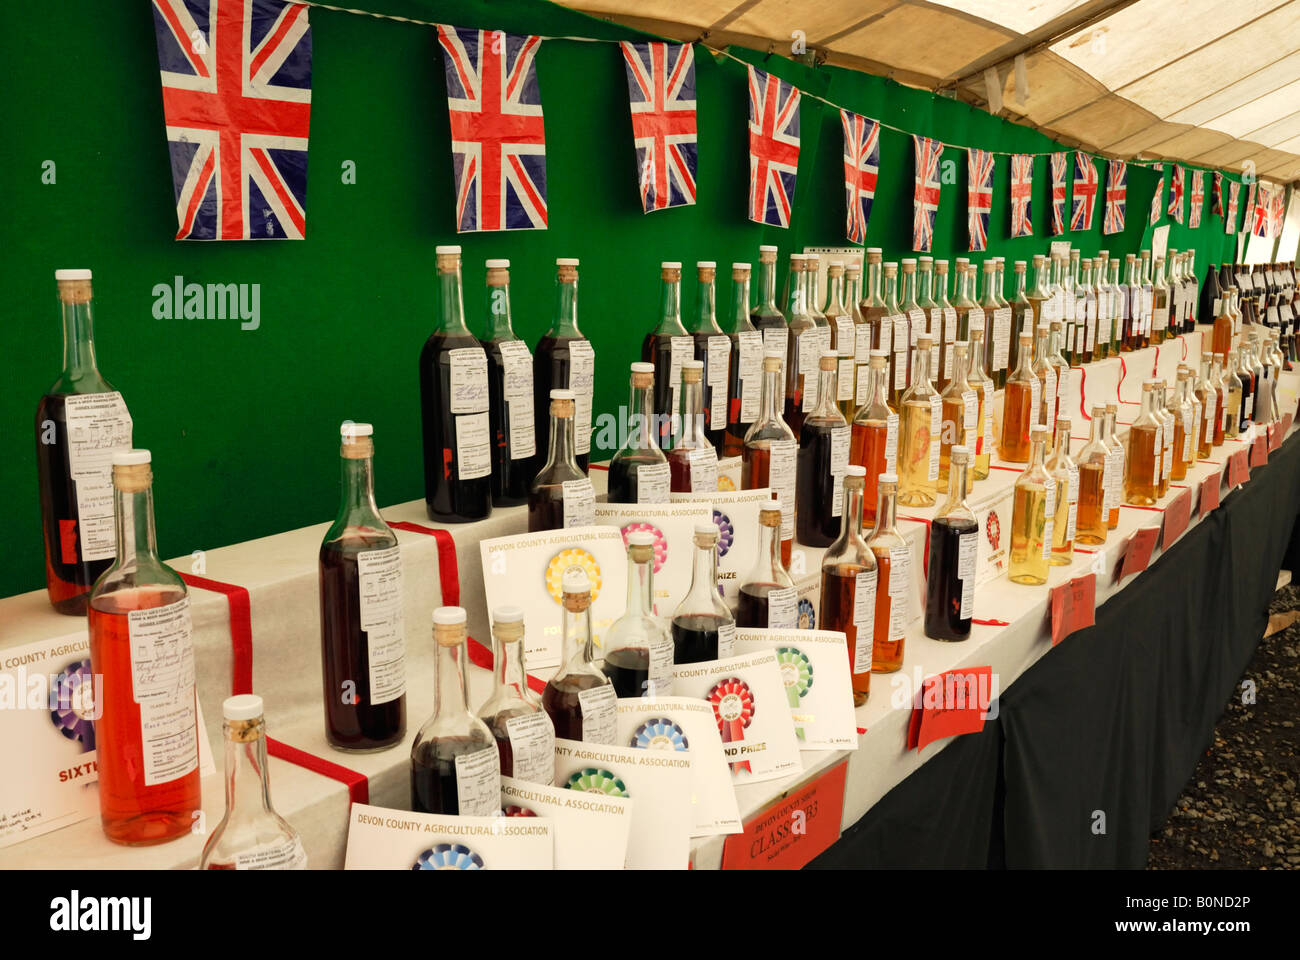 Local English wines on display at the Devon County Show, UK - Stock Image